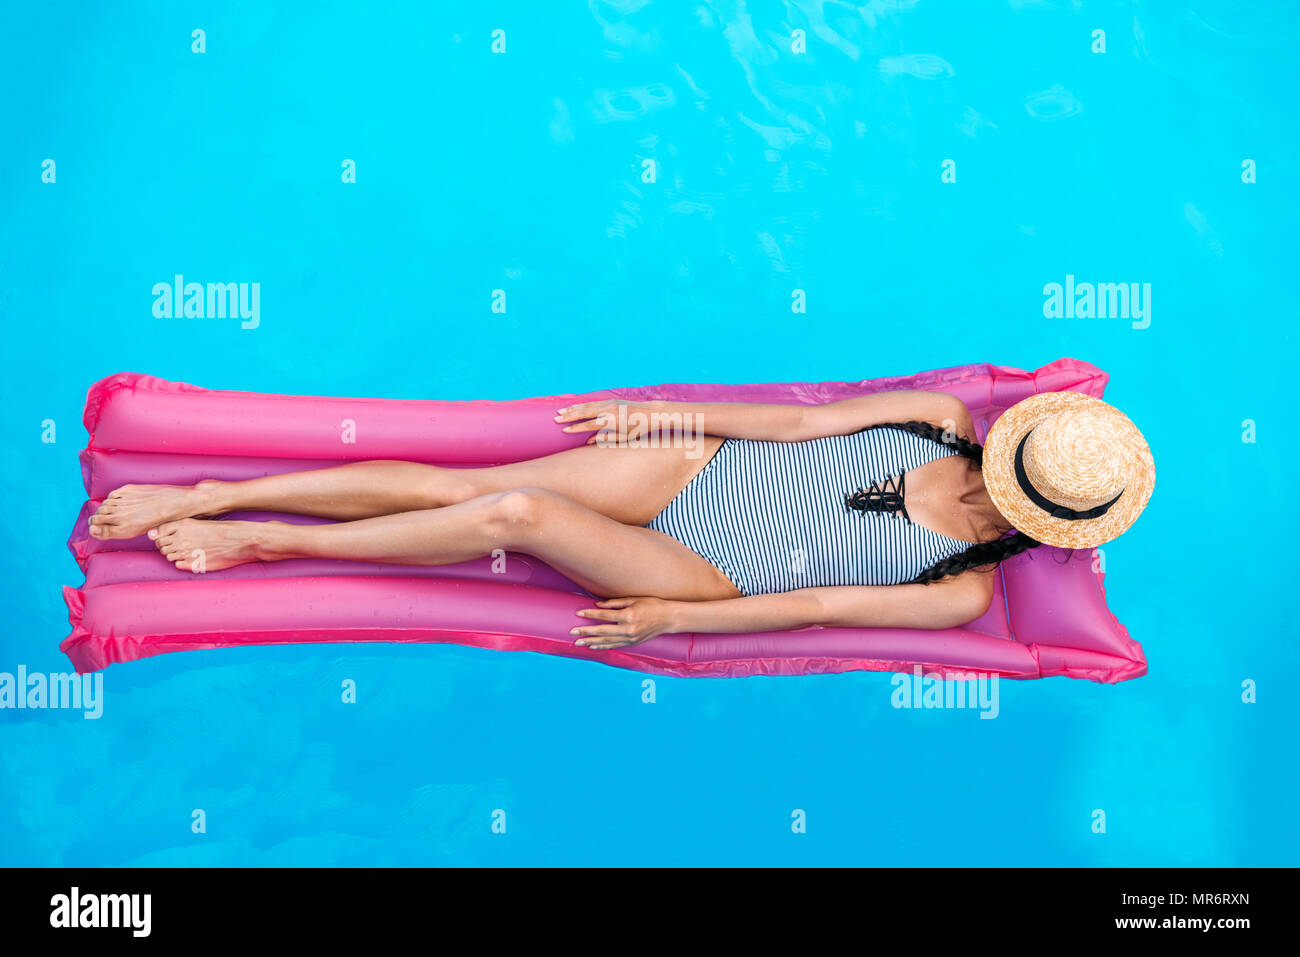 Young woman with straw hat covering face floating on air mattress in swimming pool - Stock Image